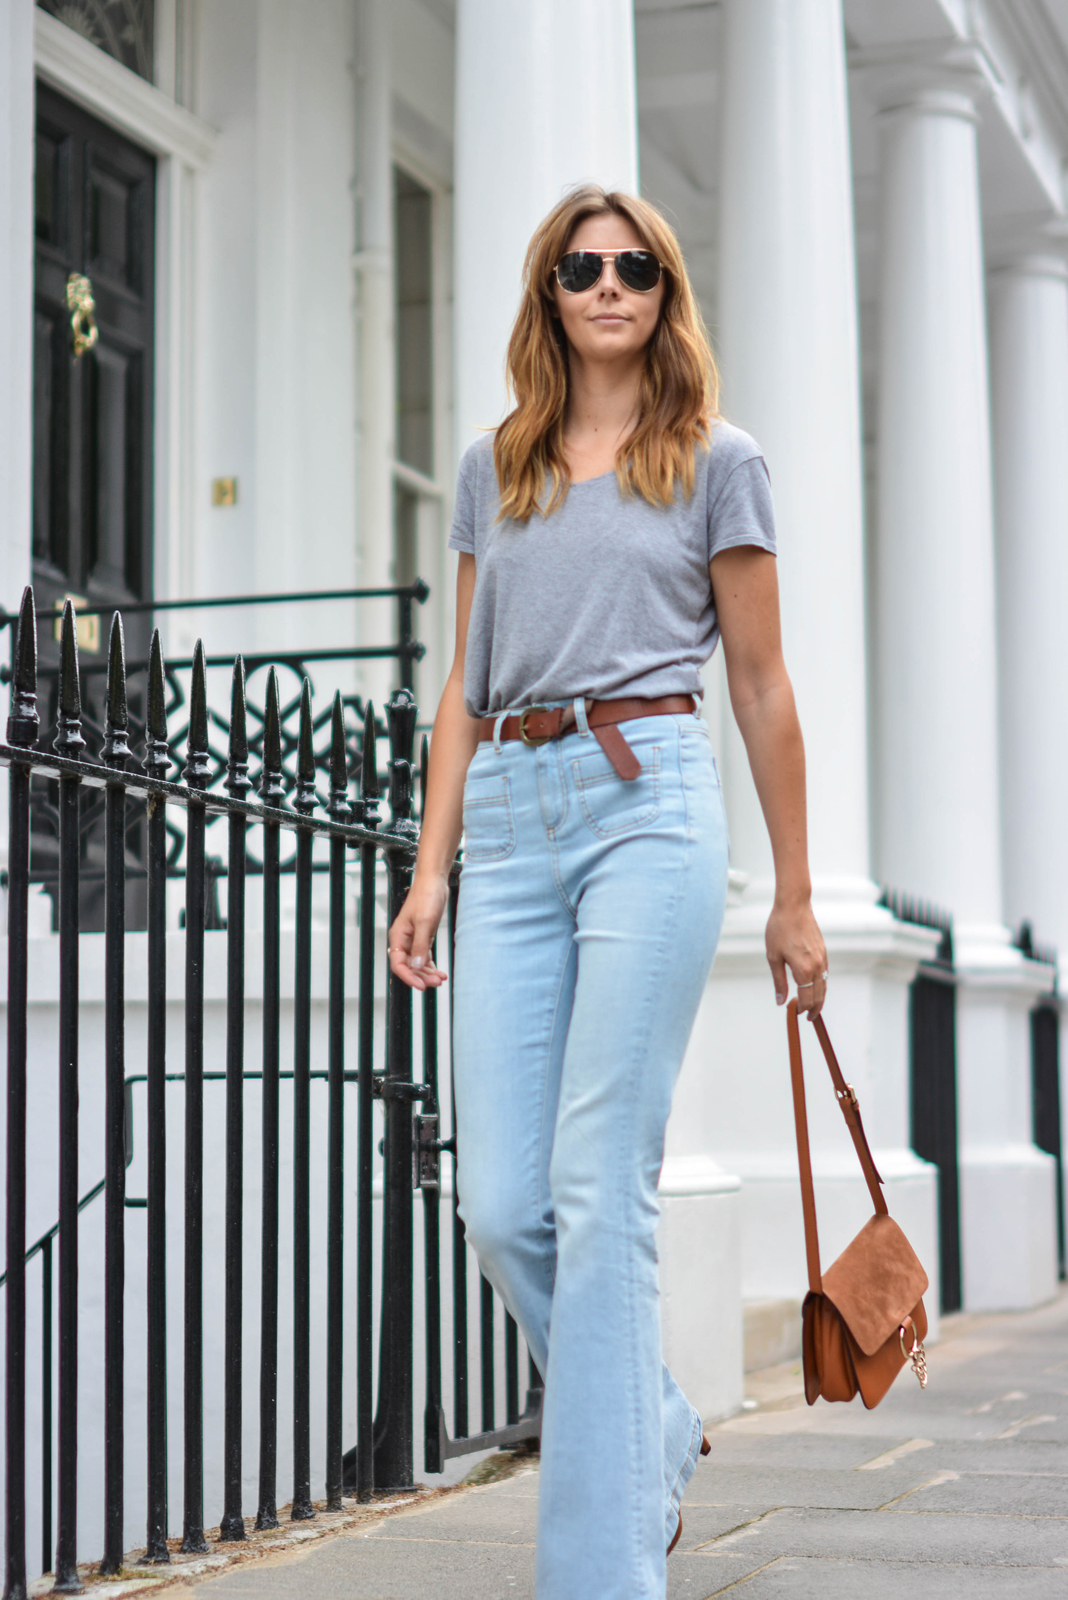 EJSTYLE wears Grey basic v neck t shirt, aviator sungasses,Tan suede leather chloe style Faye bag by Jessica Buurman, High waisted flare jeans, tan knot belt